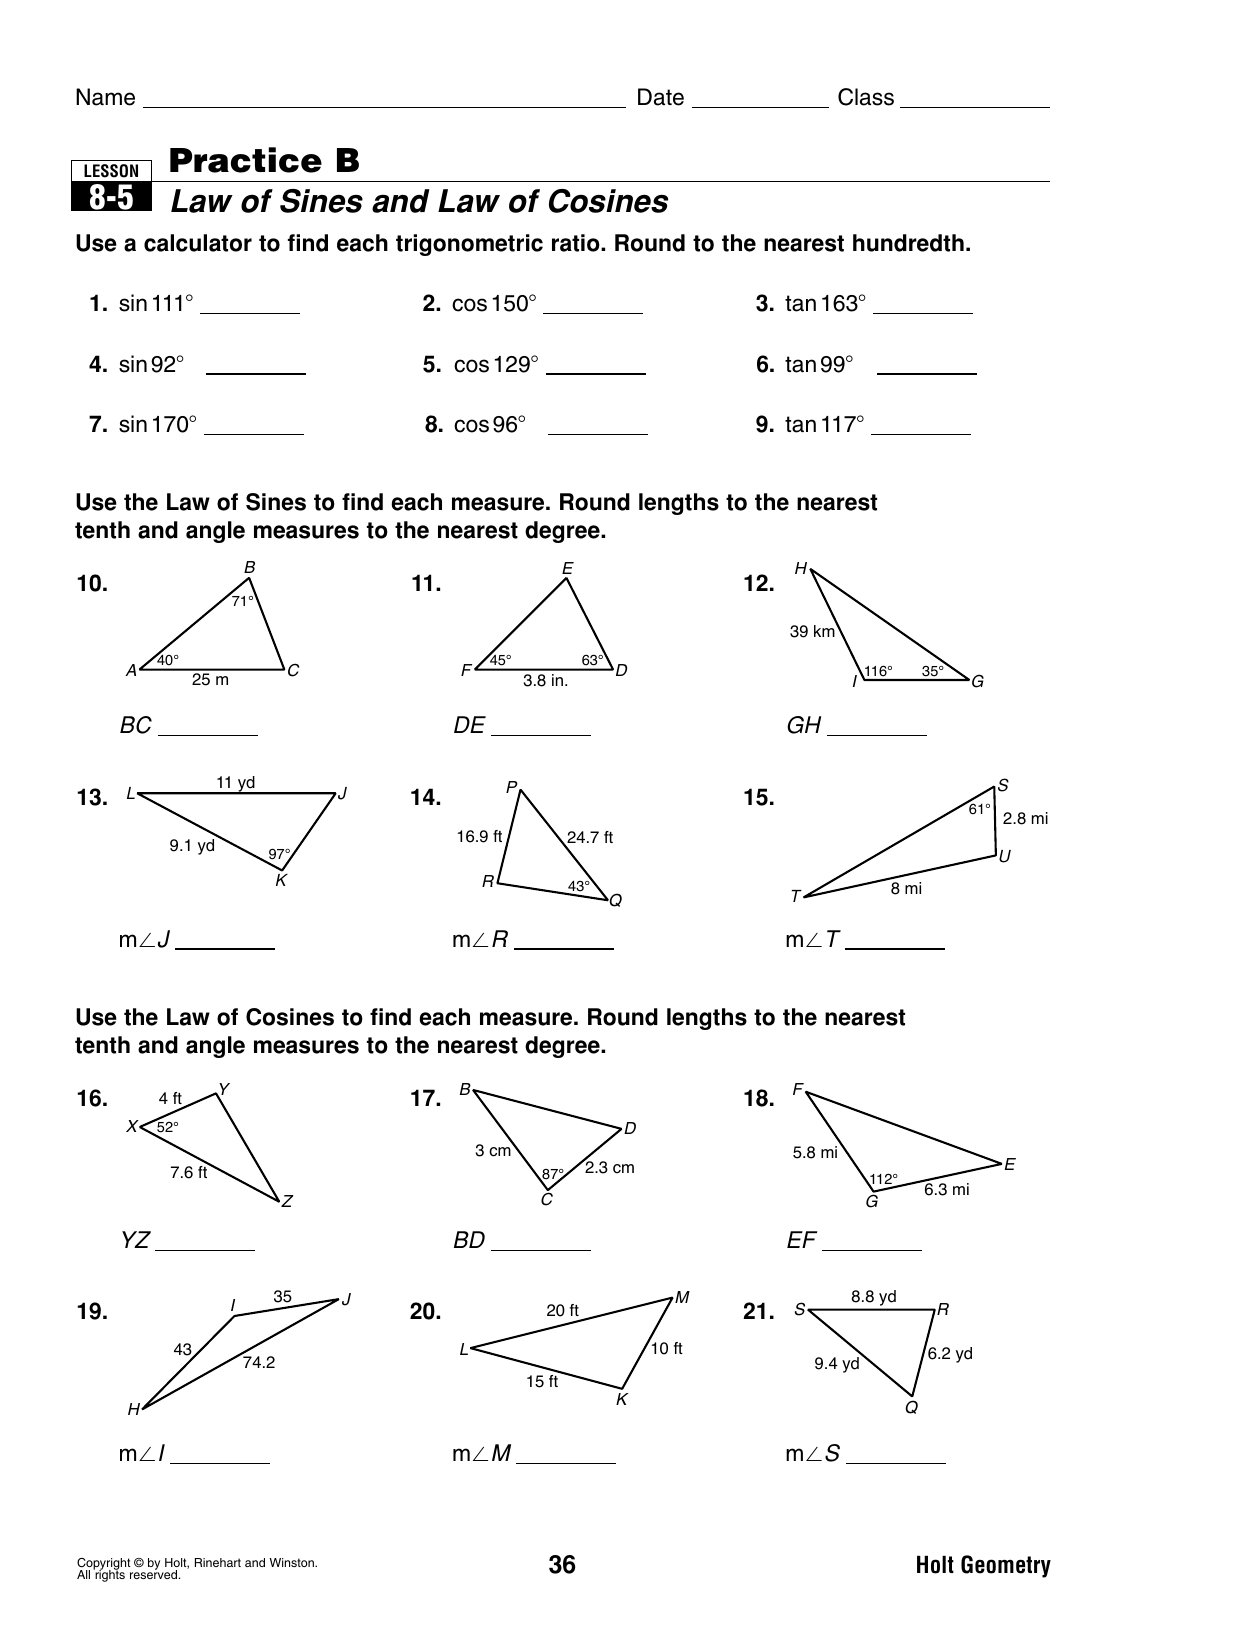 85 Practice B Law Of Sines And Law Of Cosines